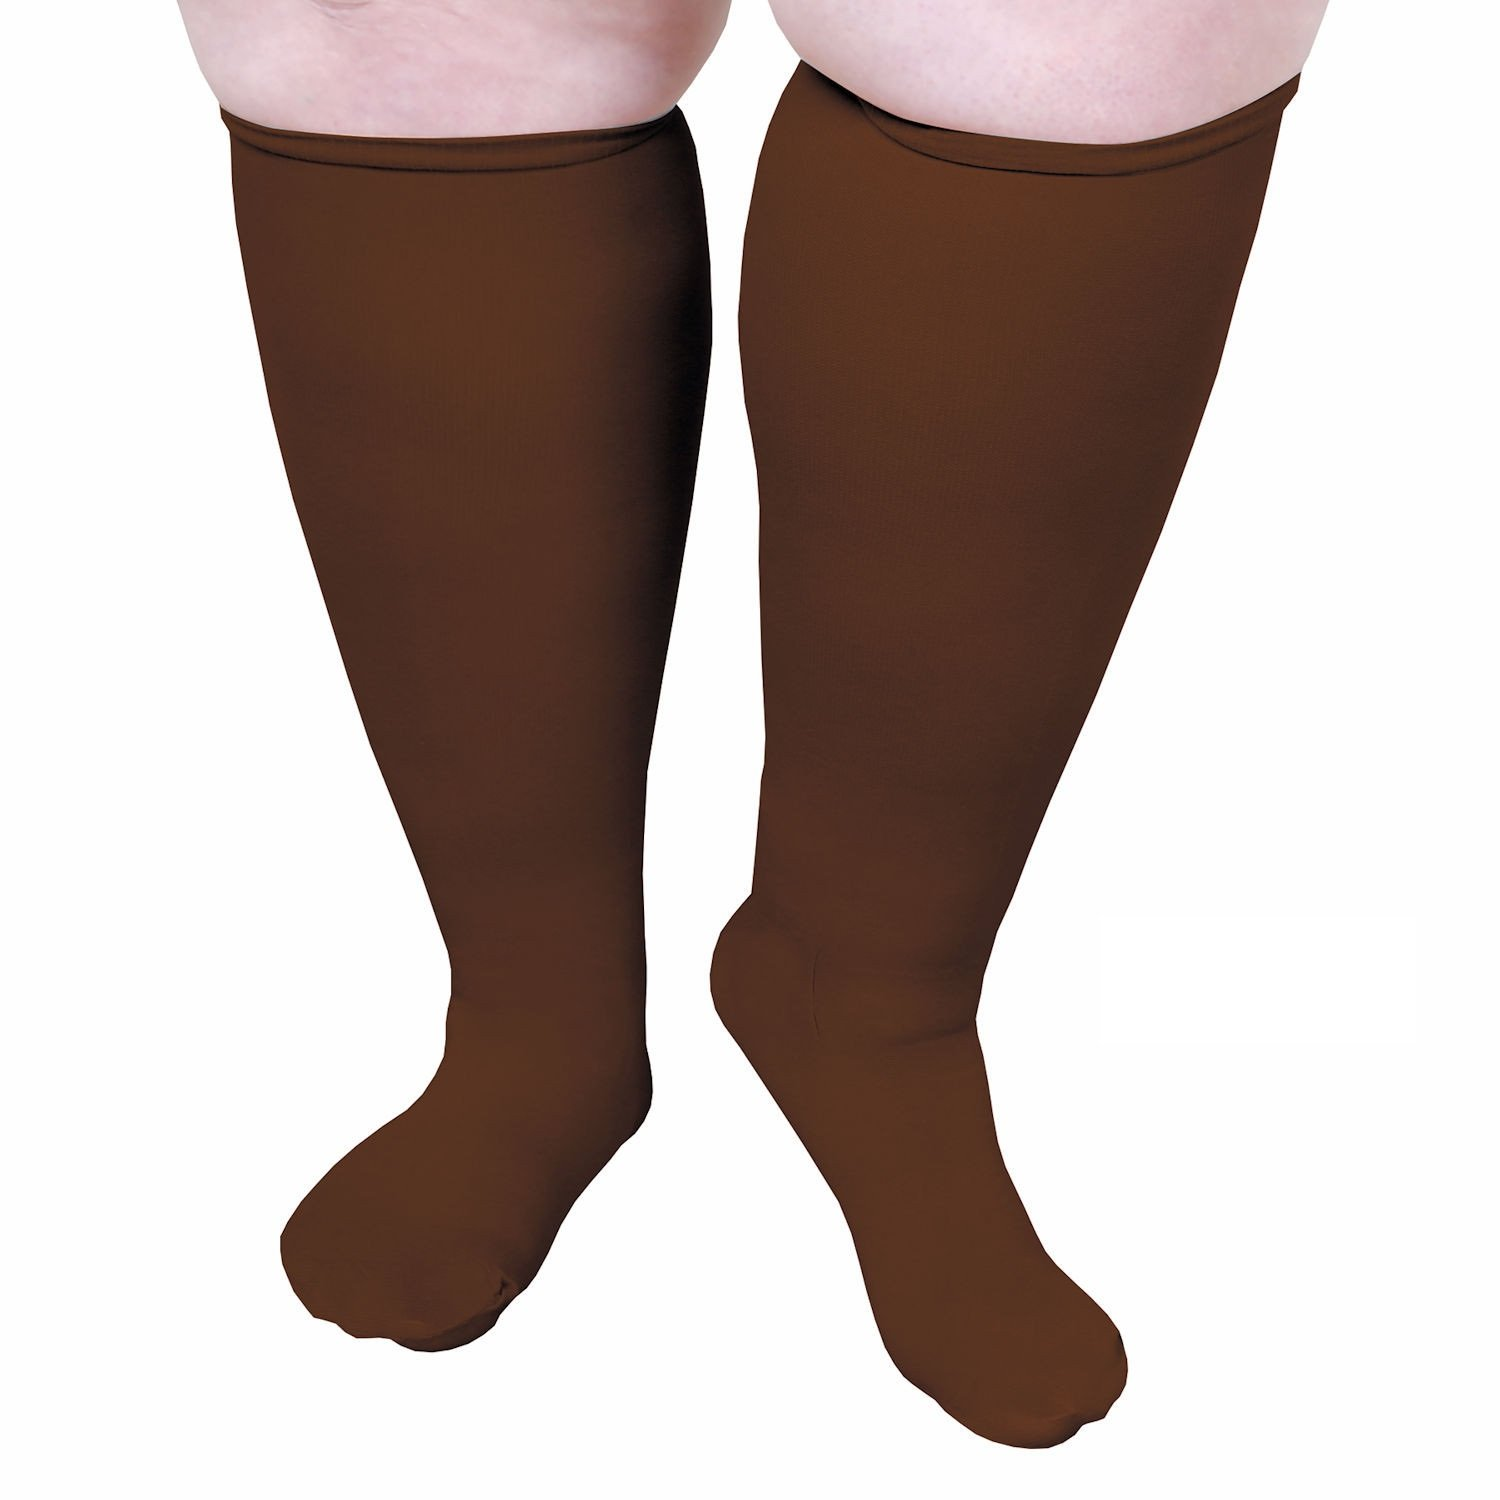 Unisex Extra Wide Moderate Compression Knee High Socks Petite Height Under 5'6'' - Brown